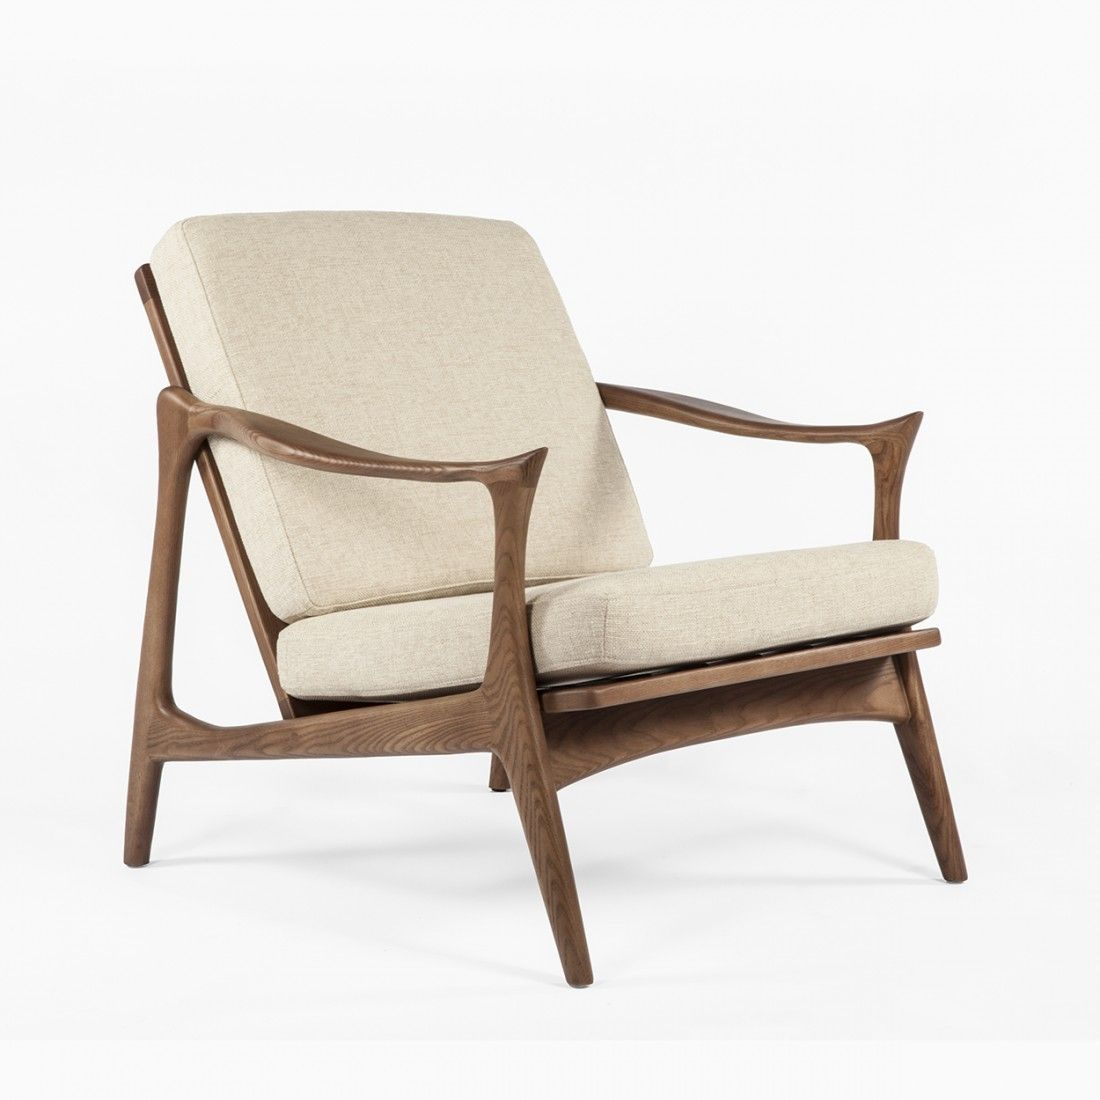 Mid Century Replica Mid Century Danish Model 711 Danish Lounge Chair Replica    Beige By Fredrik Kayser